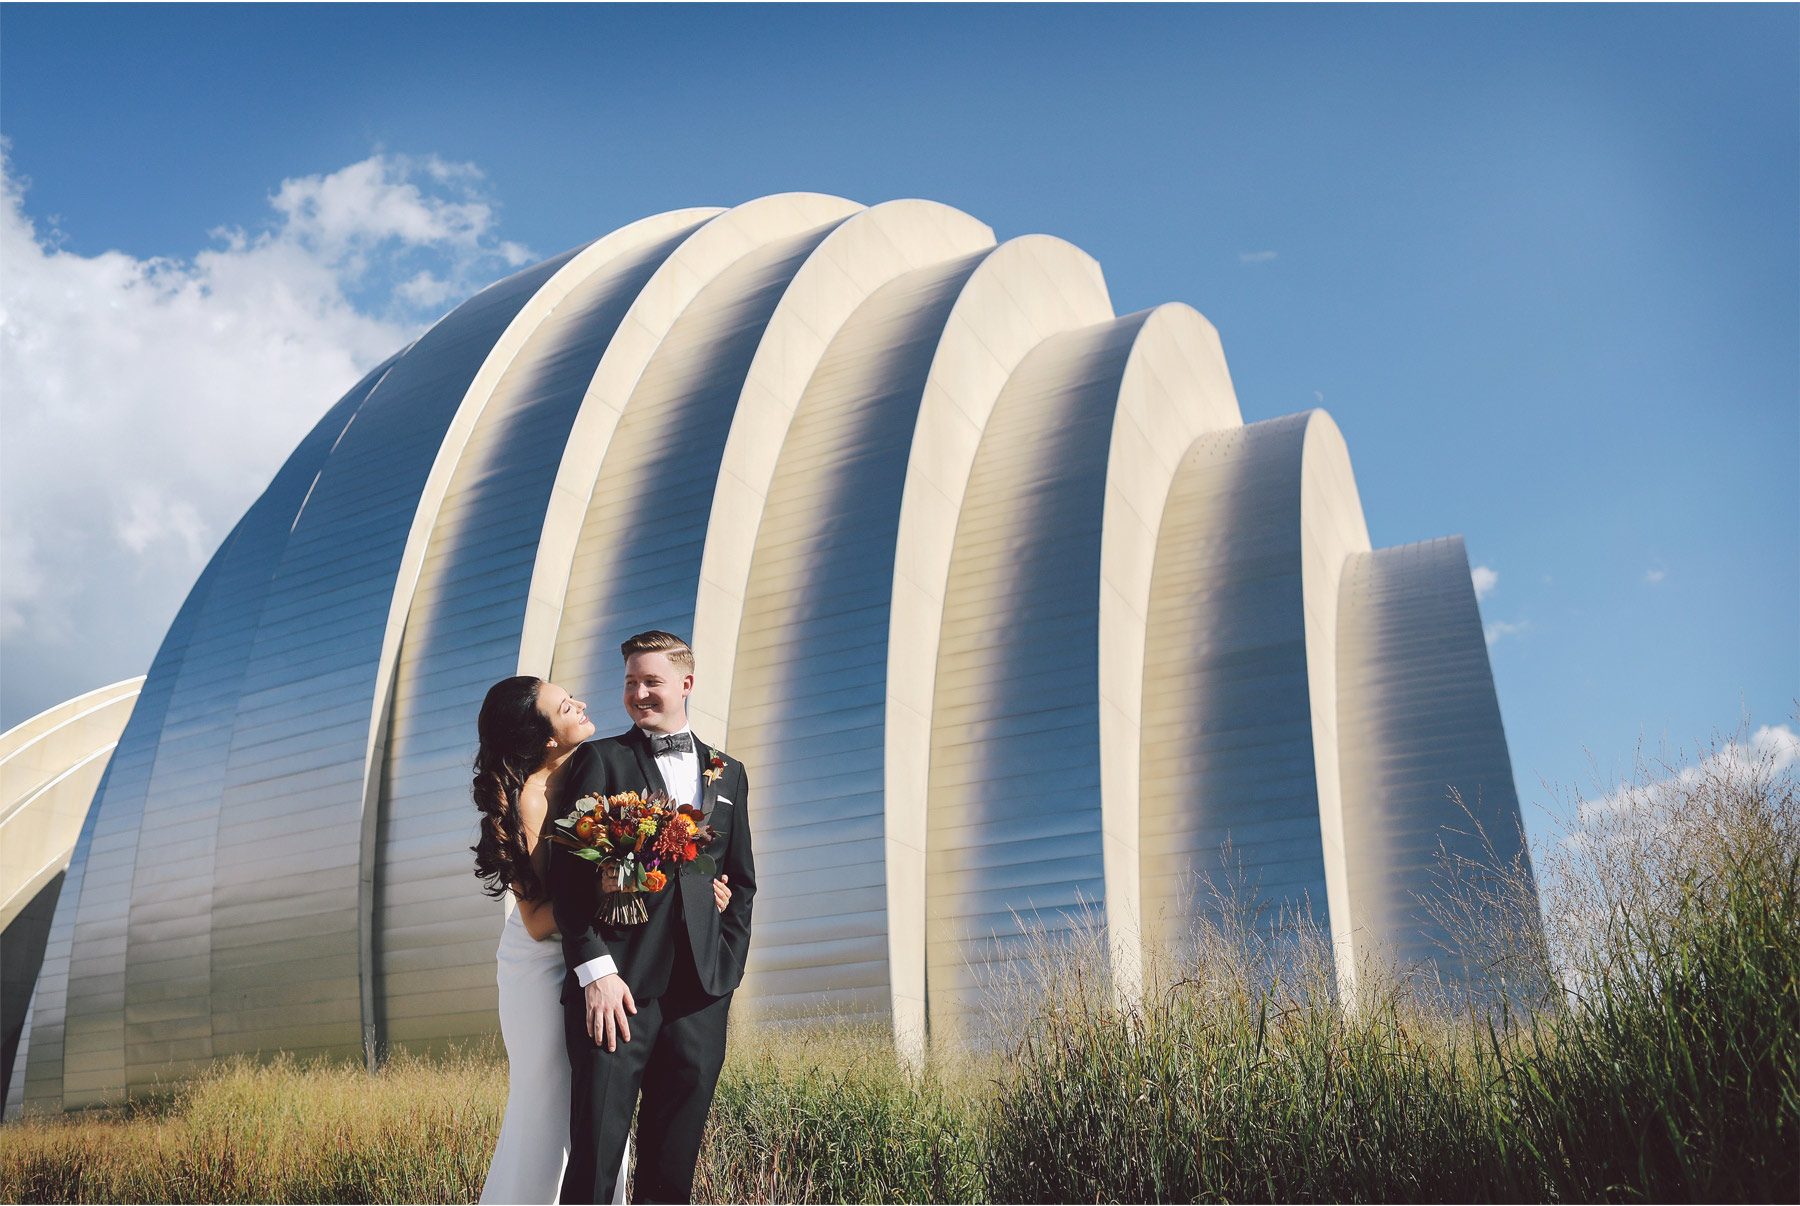 15-Kansas-City-Missouri-Destination-Wedding-Photography-by-Vick-Photography-Downtown-Architecture-Carly-and-Kenny.jpg